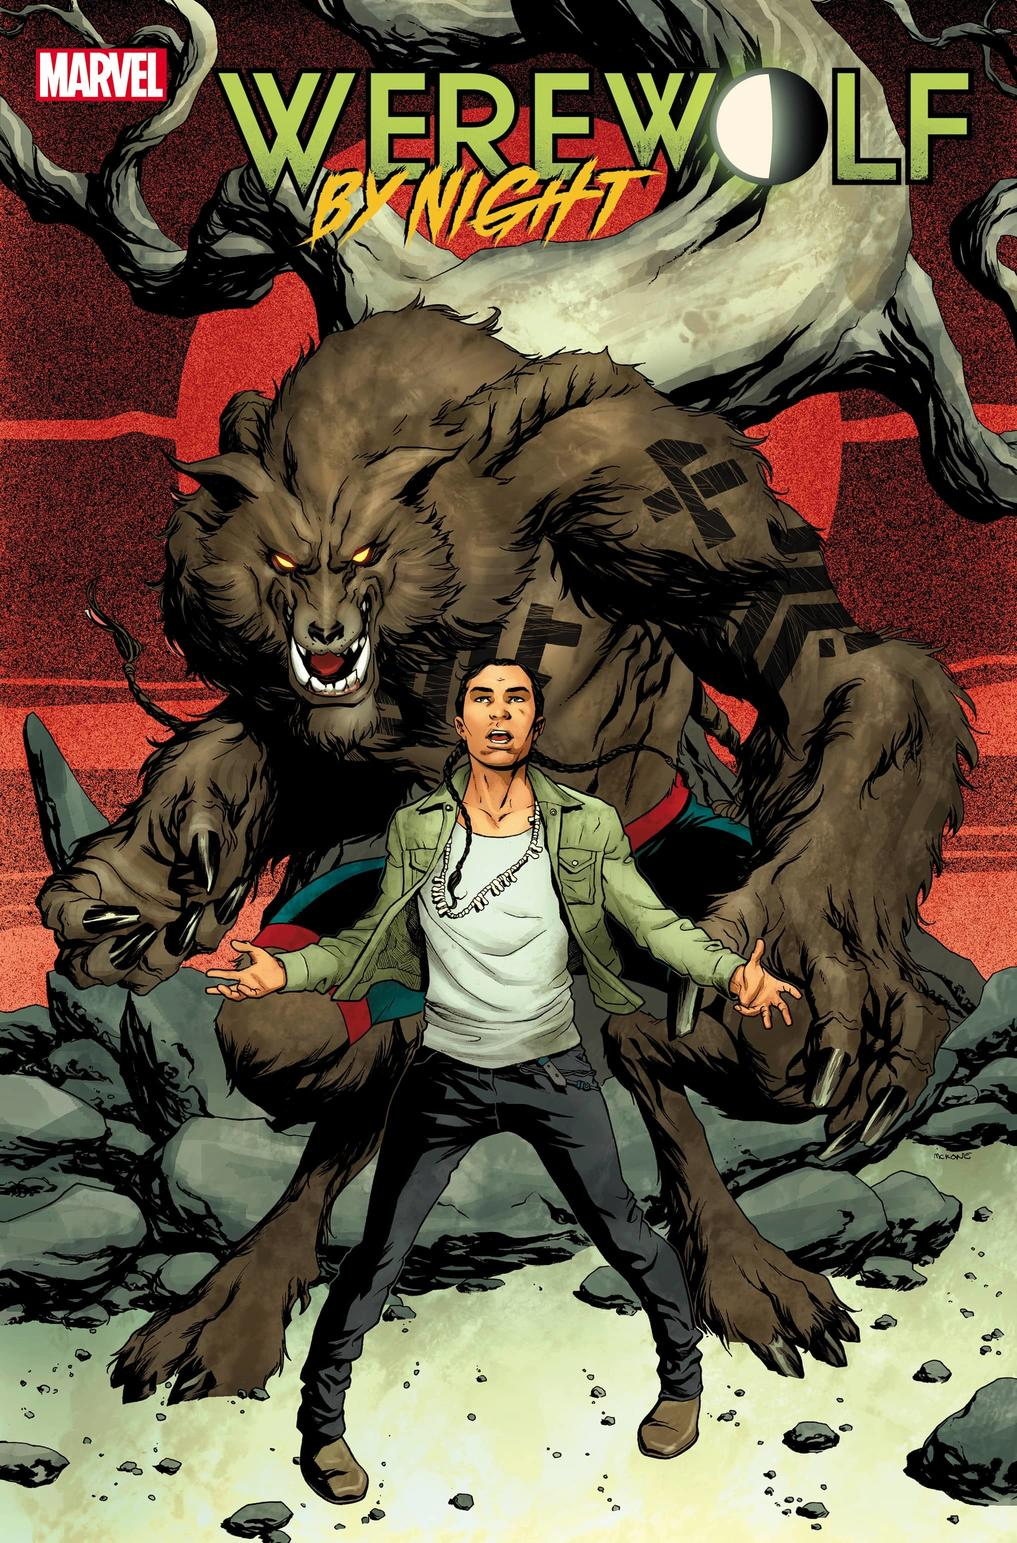 WEREWOLF BY NIGHT #1 WRITTEN BY TABOO AND BENJAMIN JACKENDOFF, ART BY SCOT EATON, COVER BY MIKE MCKONE